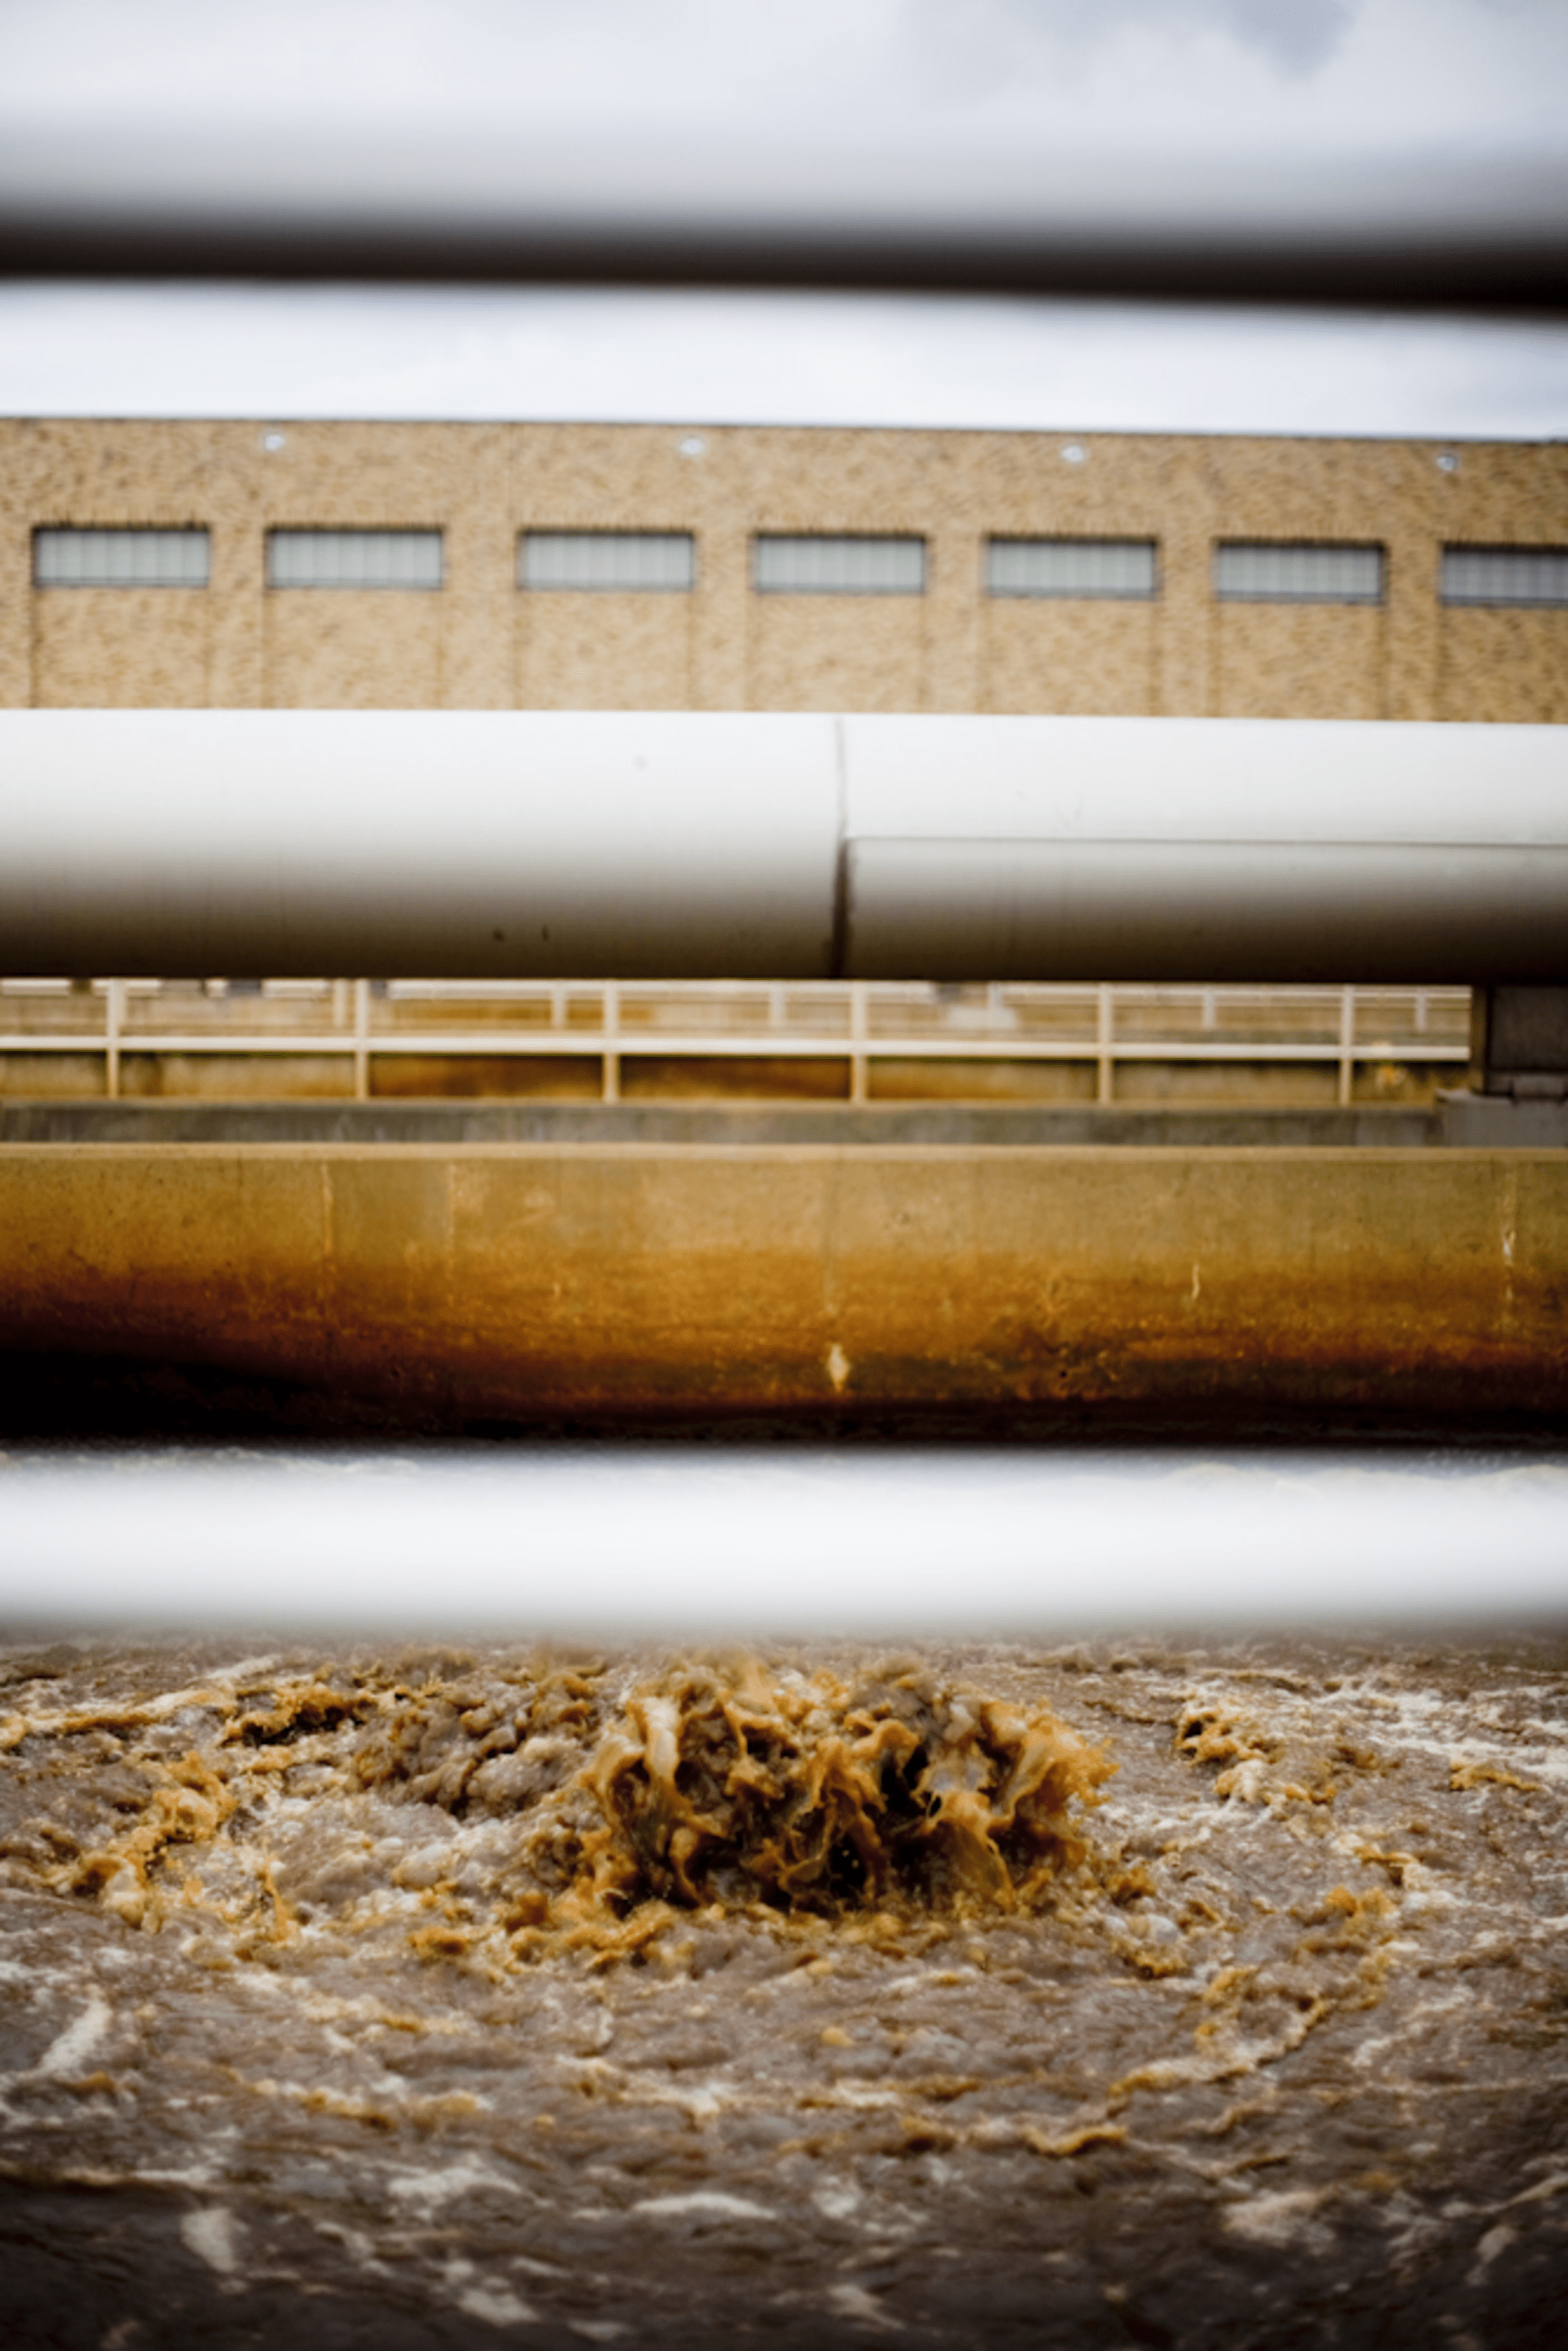 Aeration pumps run on more than 4,000 volts and 2,000 horsepower each.